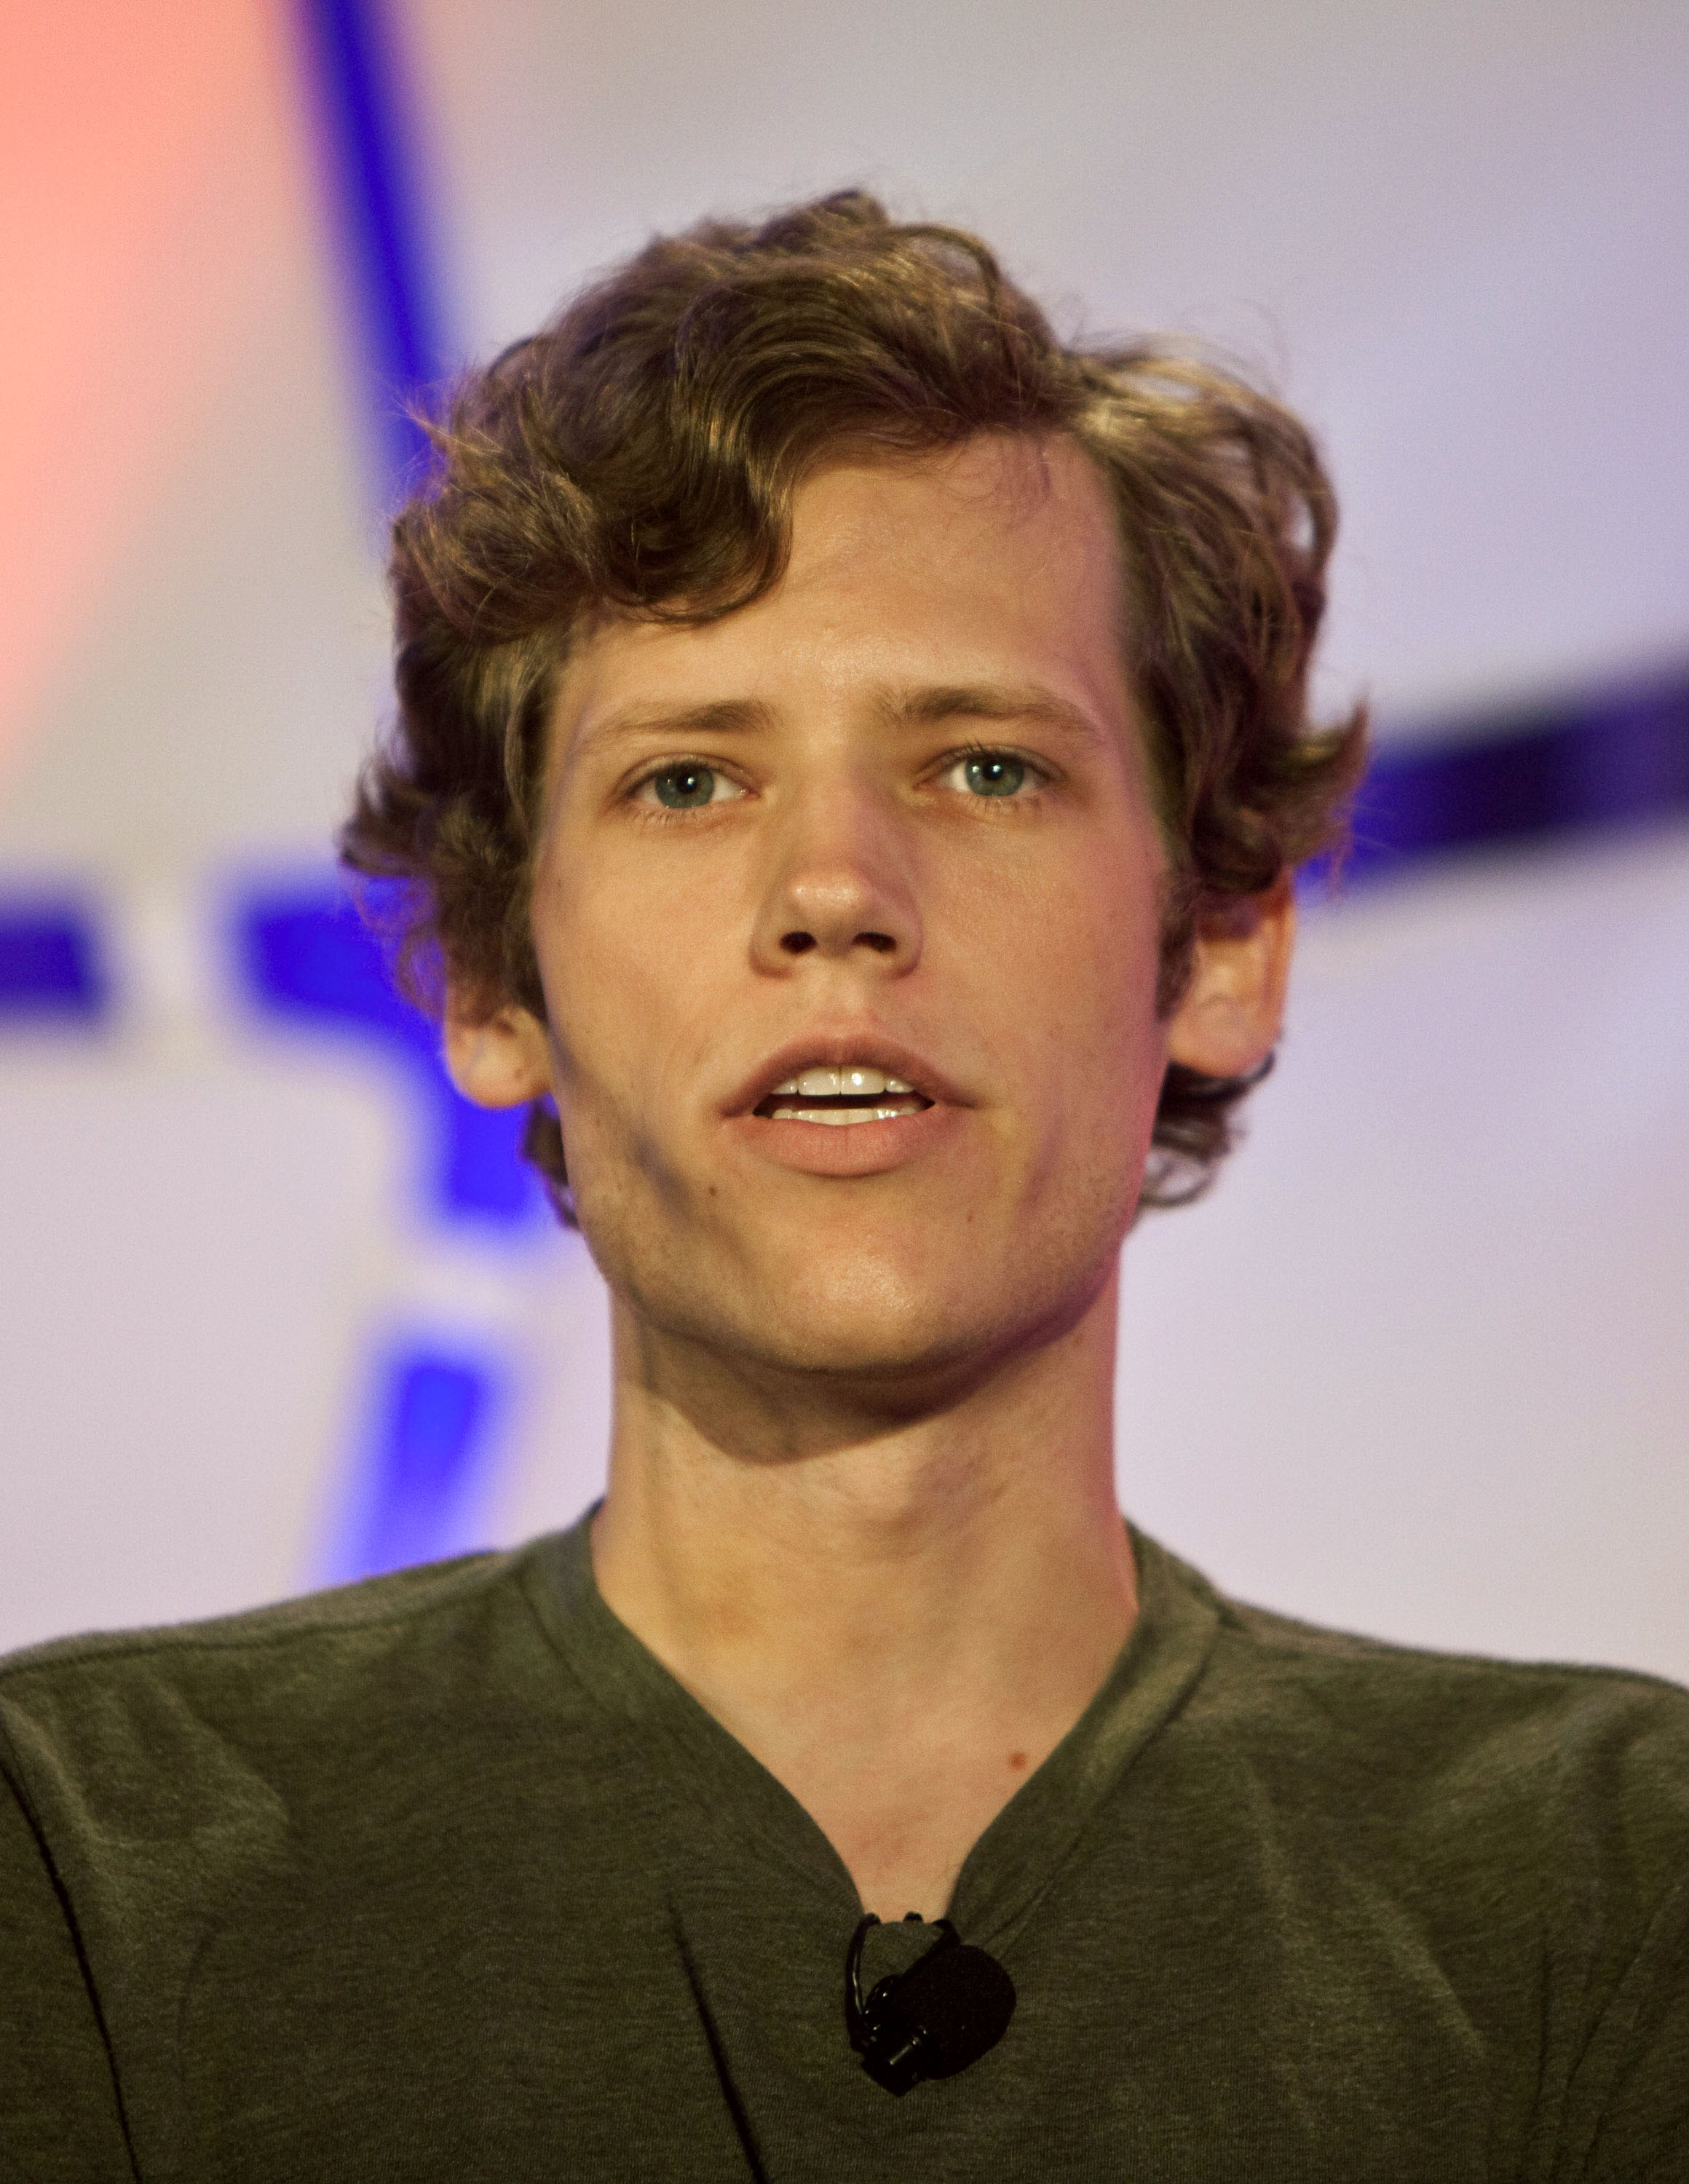 Christopher Poole, founder of 4chan, speaks during the TechCrunch Disrupt conference in New York, U.S., May 25, 2010